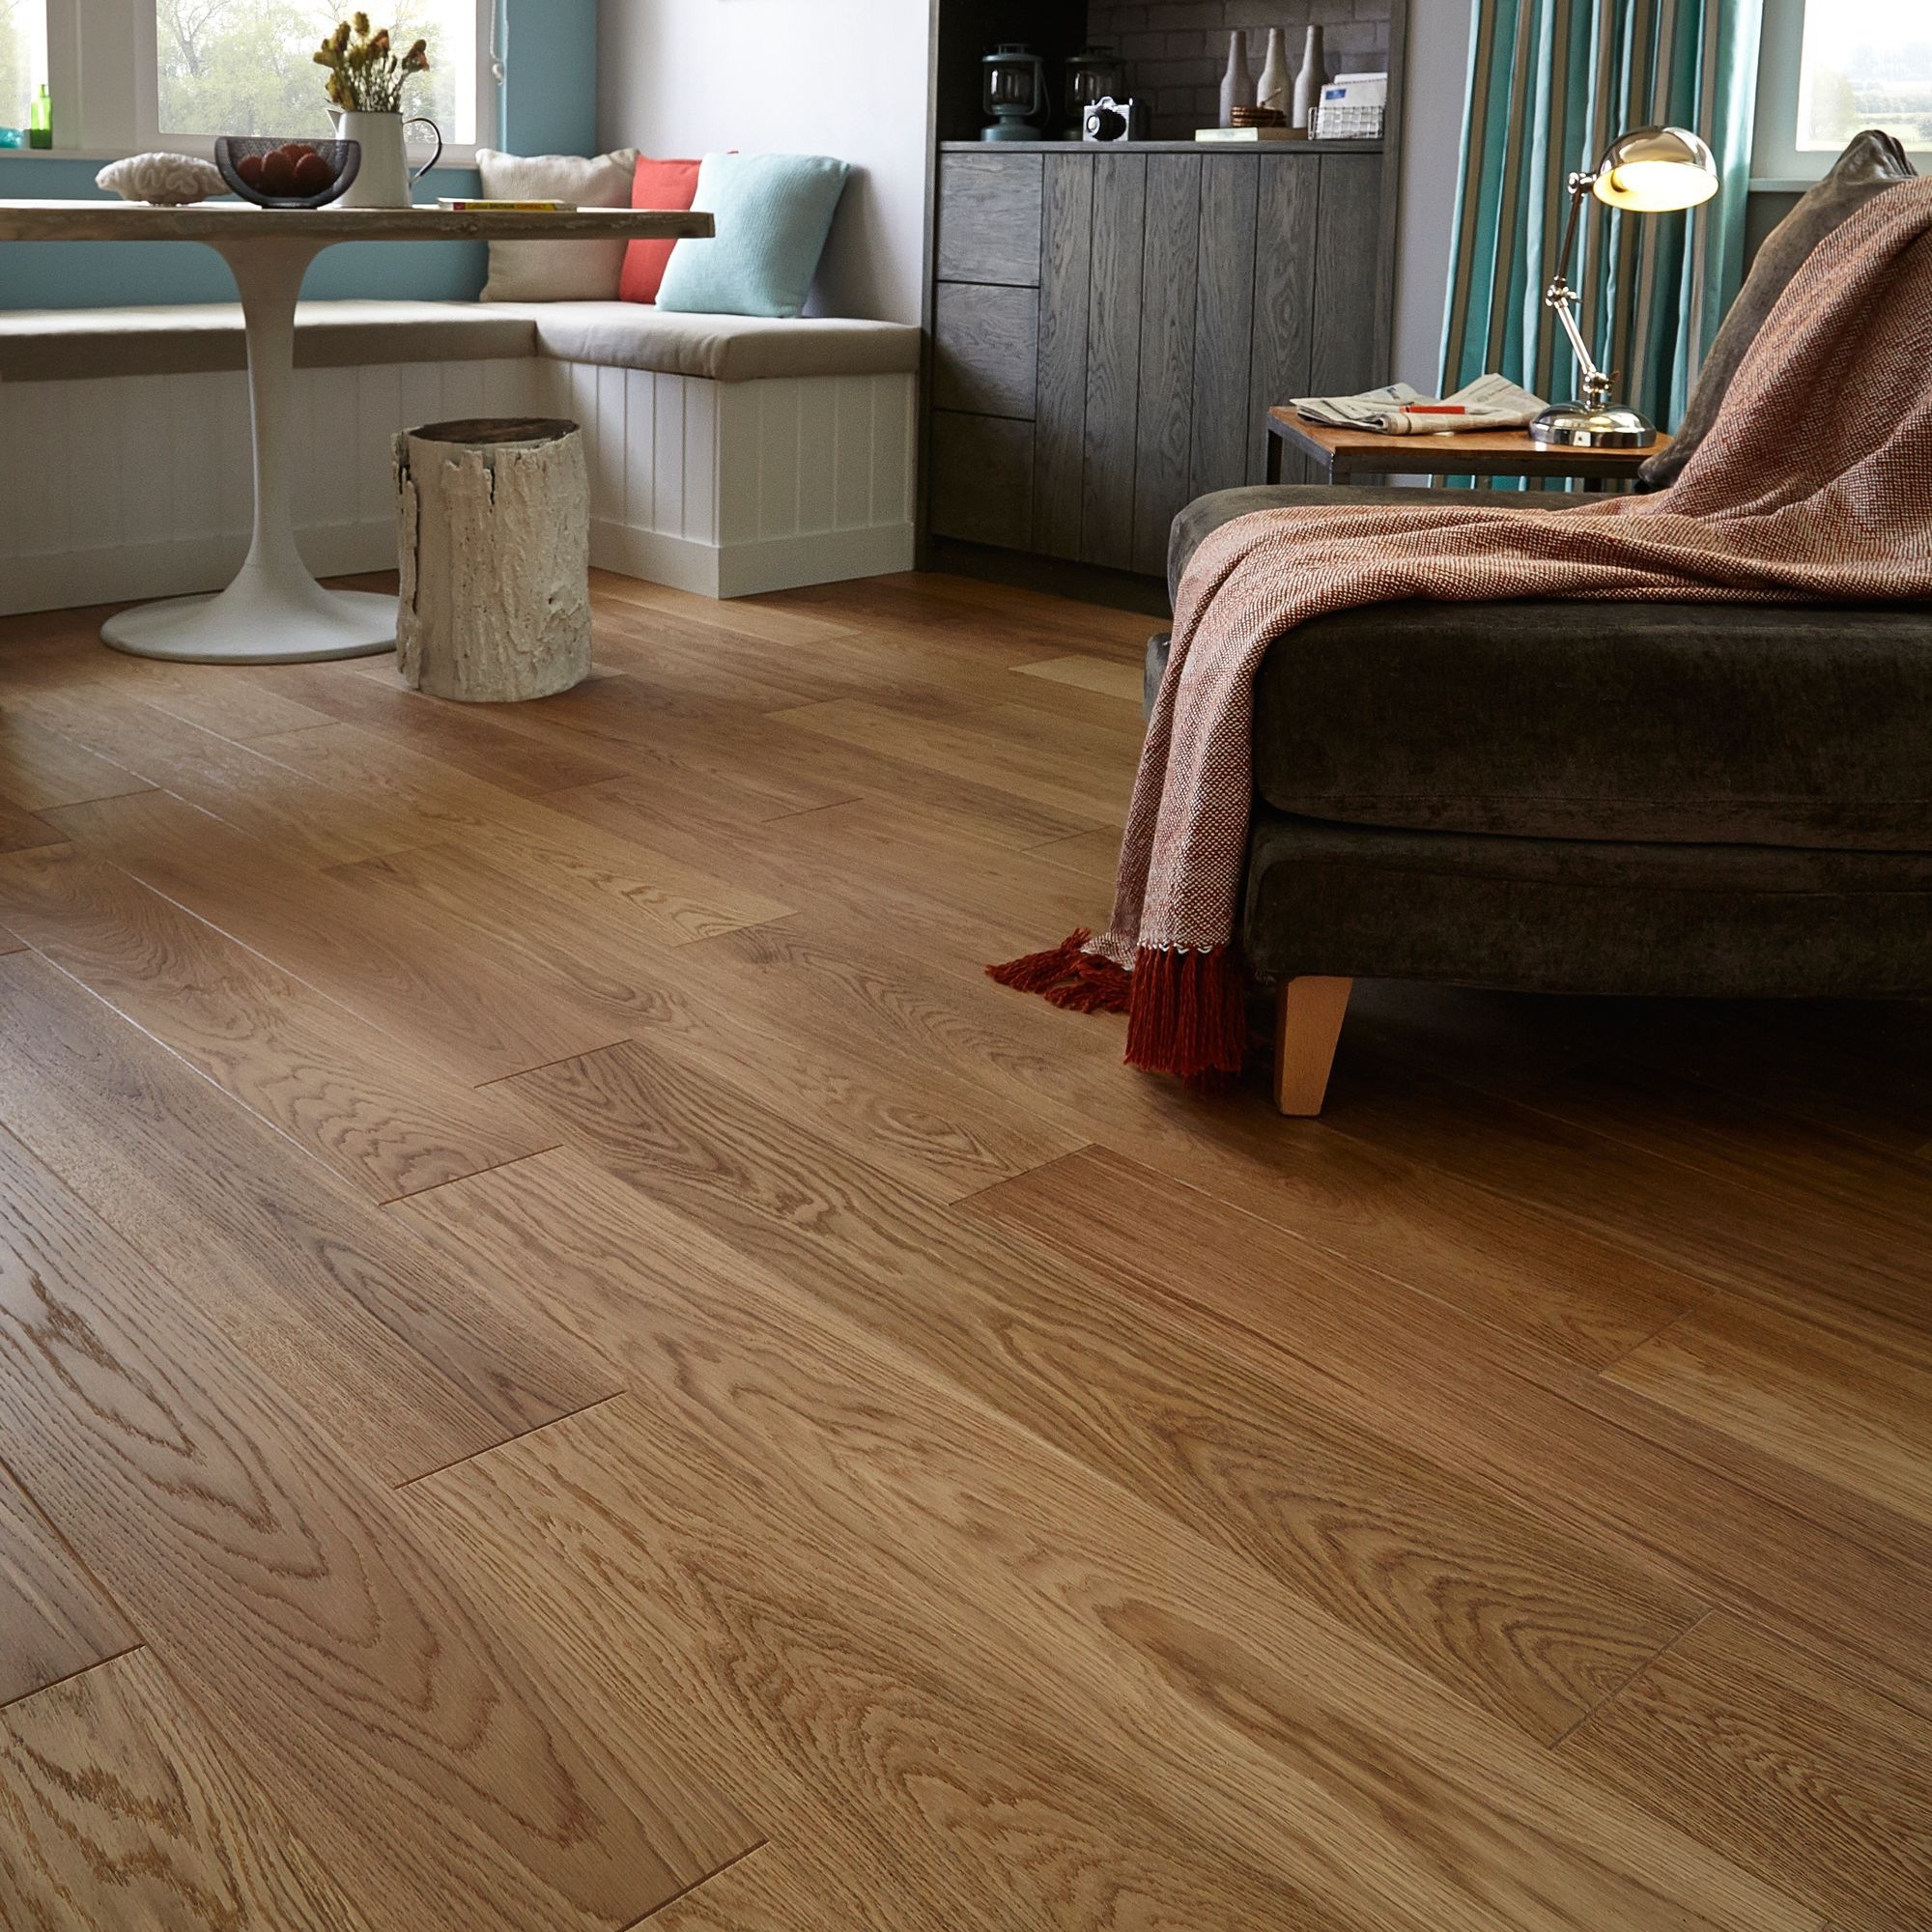 Quick step cadenza natural oak effect wood top layer for Natural oak wood flooring